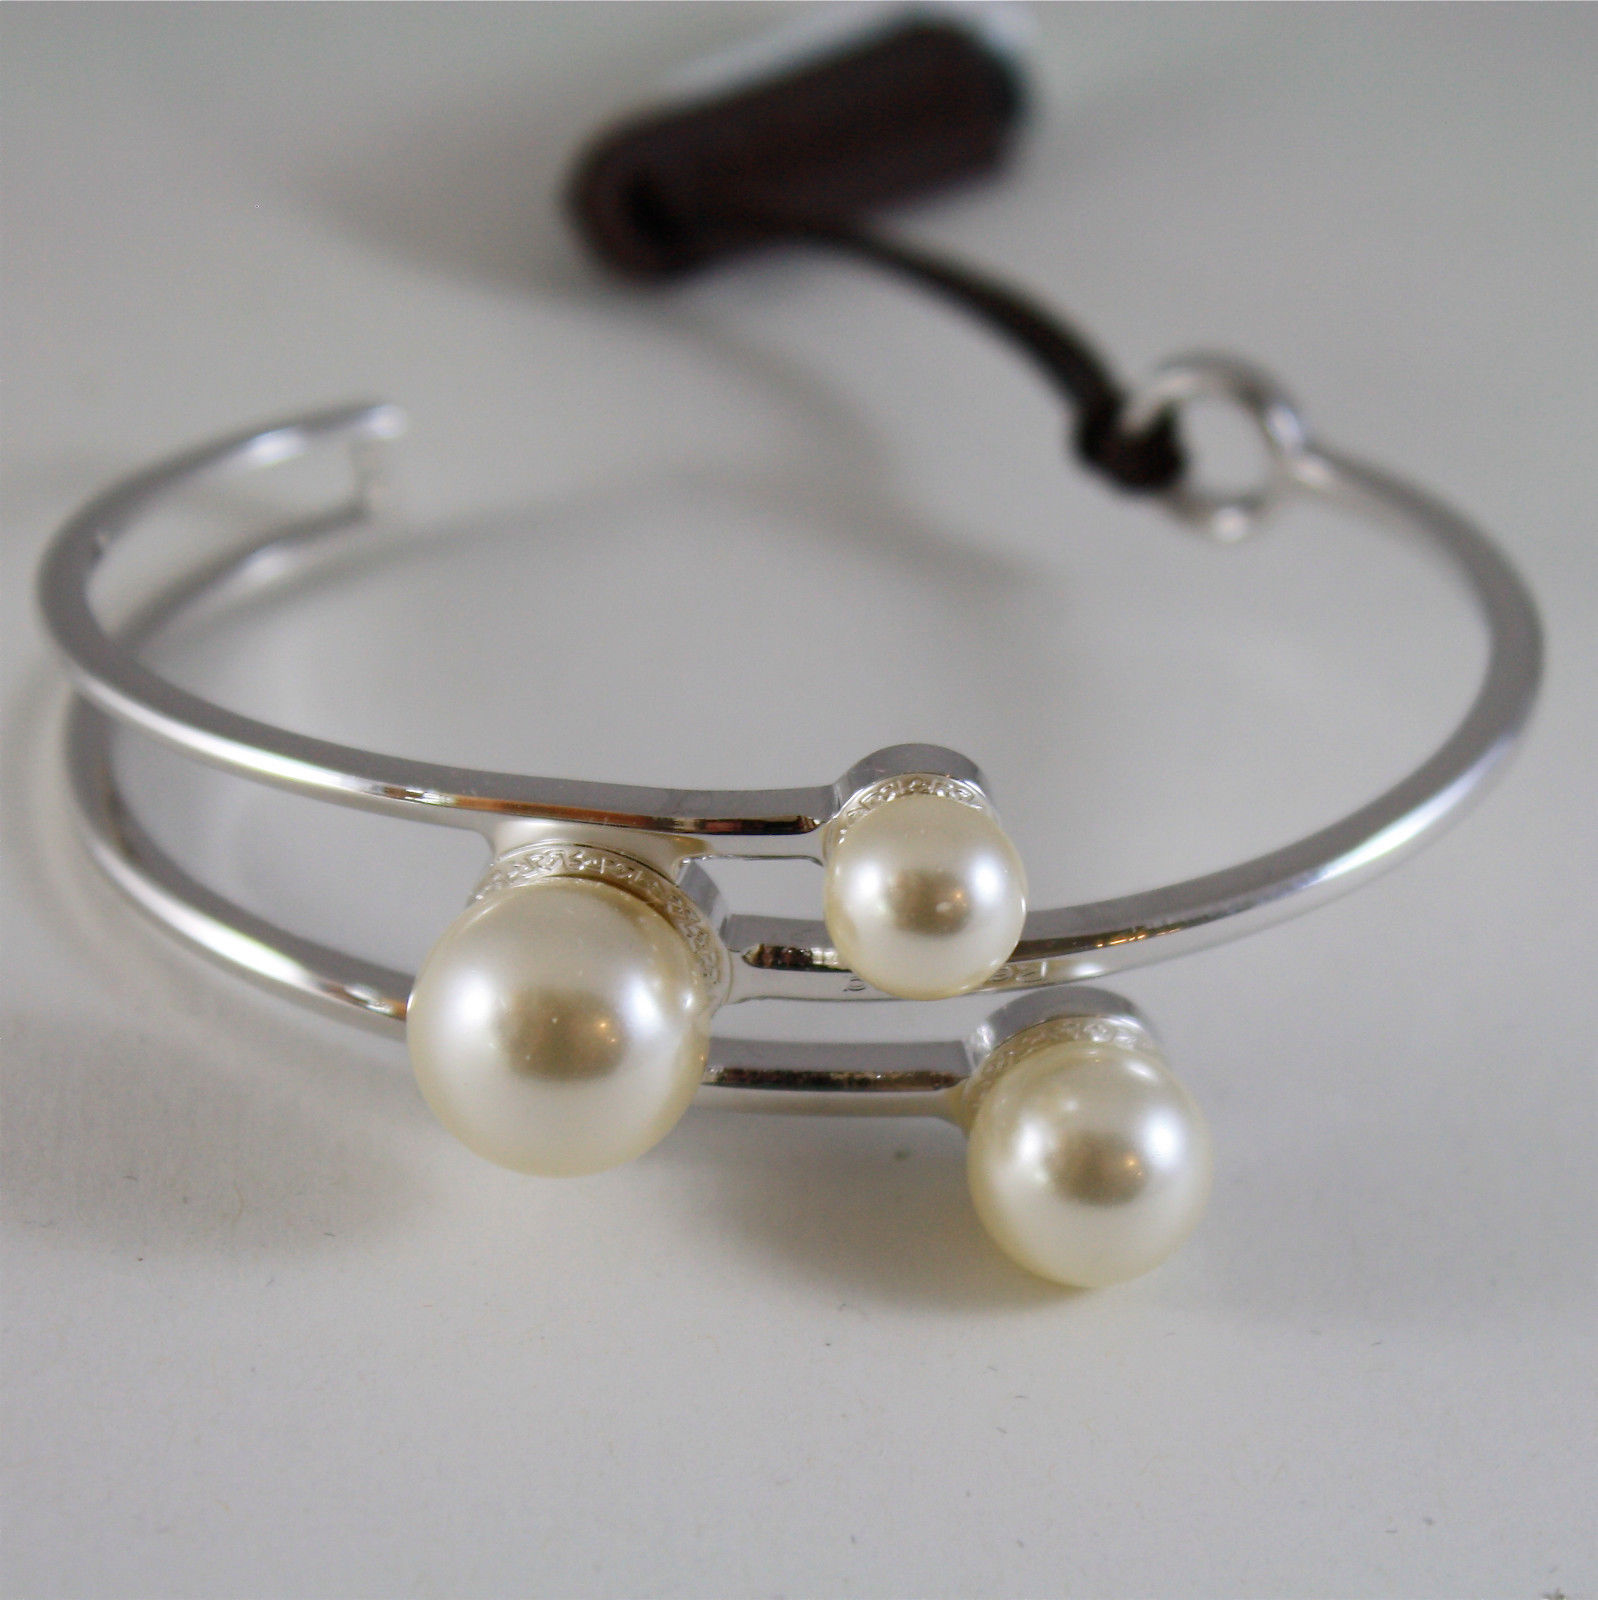 WHITE GOLD PLATED BRONZE REBECCA PEARL BRACELET HOLLYWOOD BHOBBB15 MADE IN ITALY